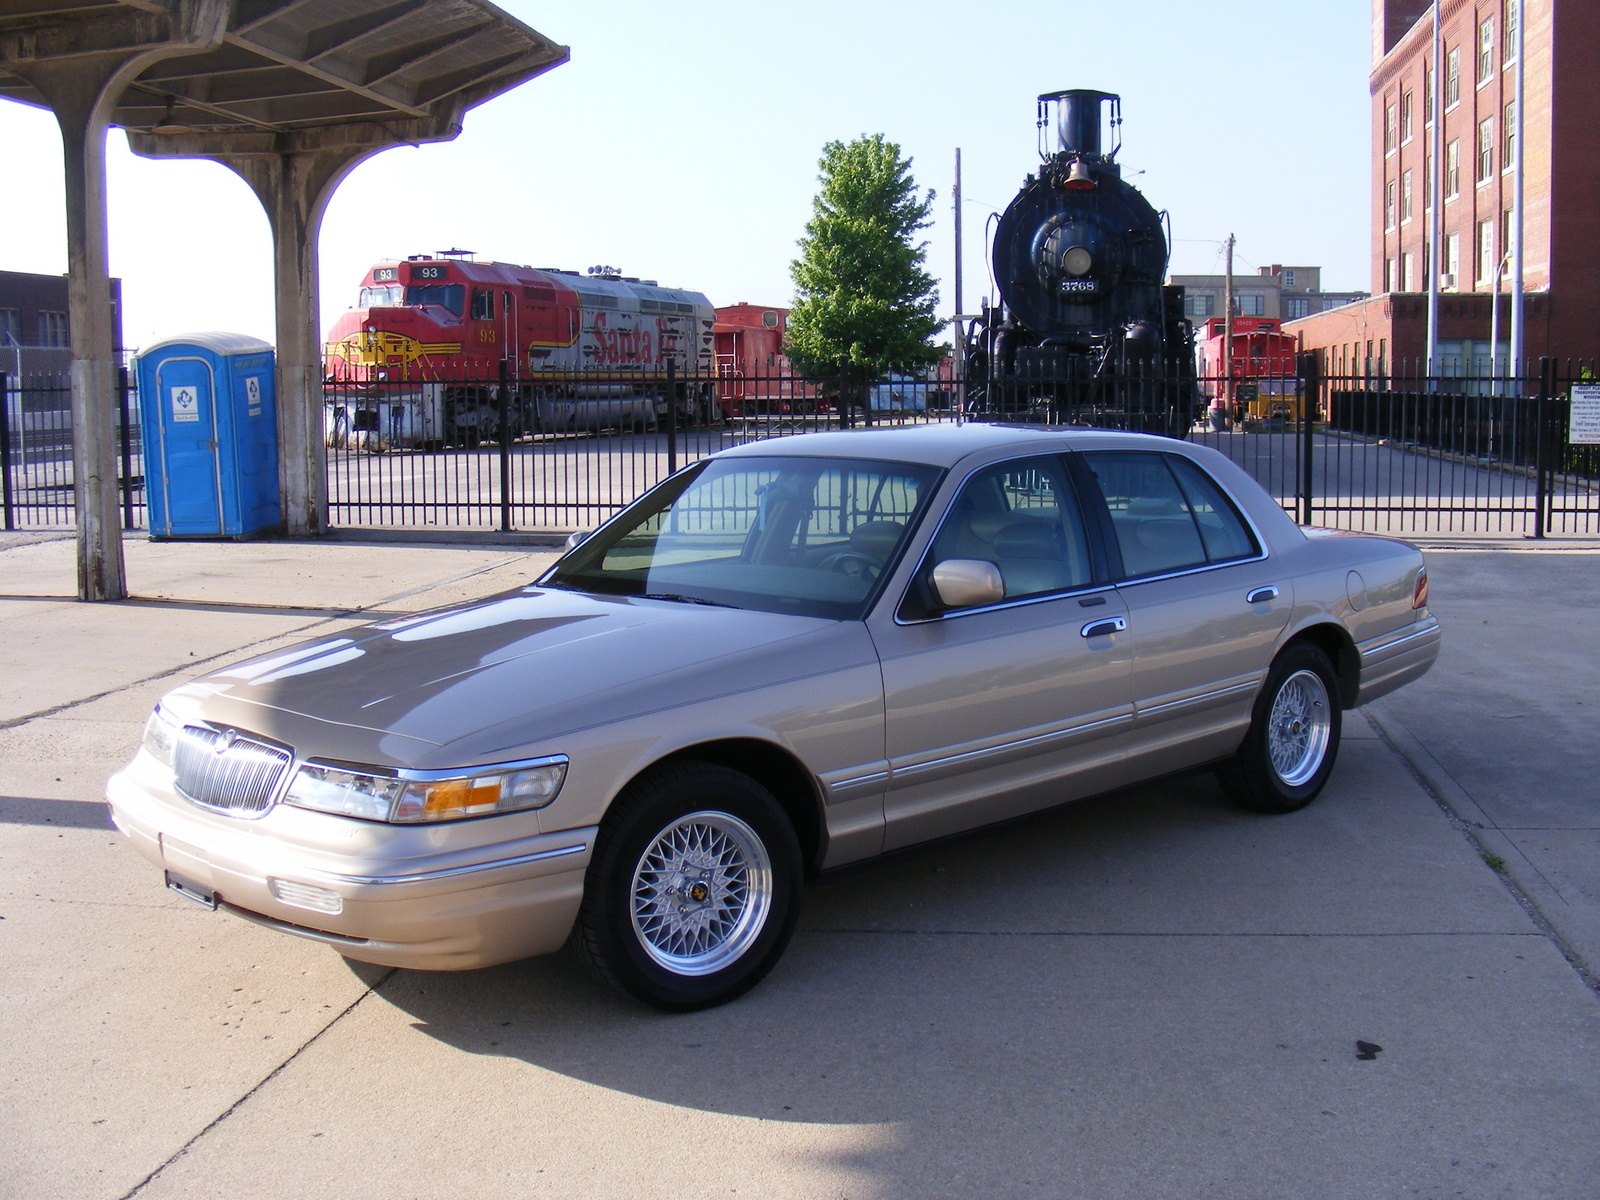 Ford crown victoria 31 of the time picture of 1997 mercury grand marquis 4 dr ls sedan exterior gallery_worthy